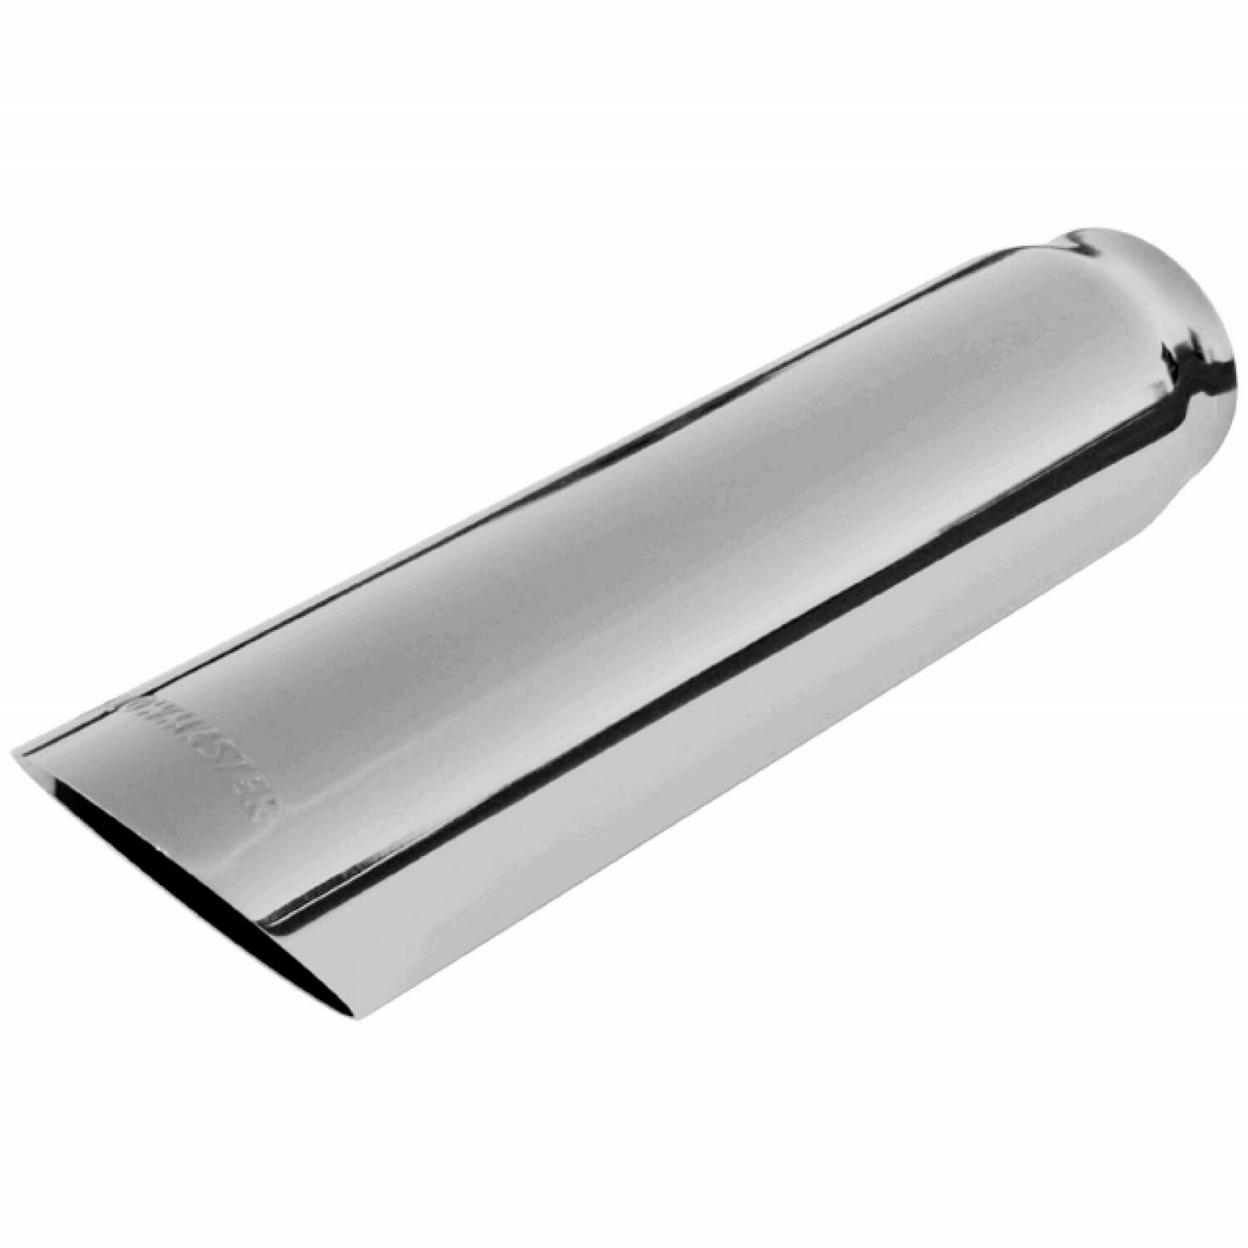 Exhaust Tip - 3.00 in. Cut Angle Polished SS Fits 2.50 in. Tubing - weld on